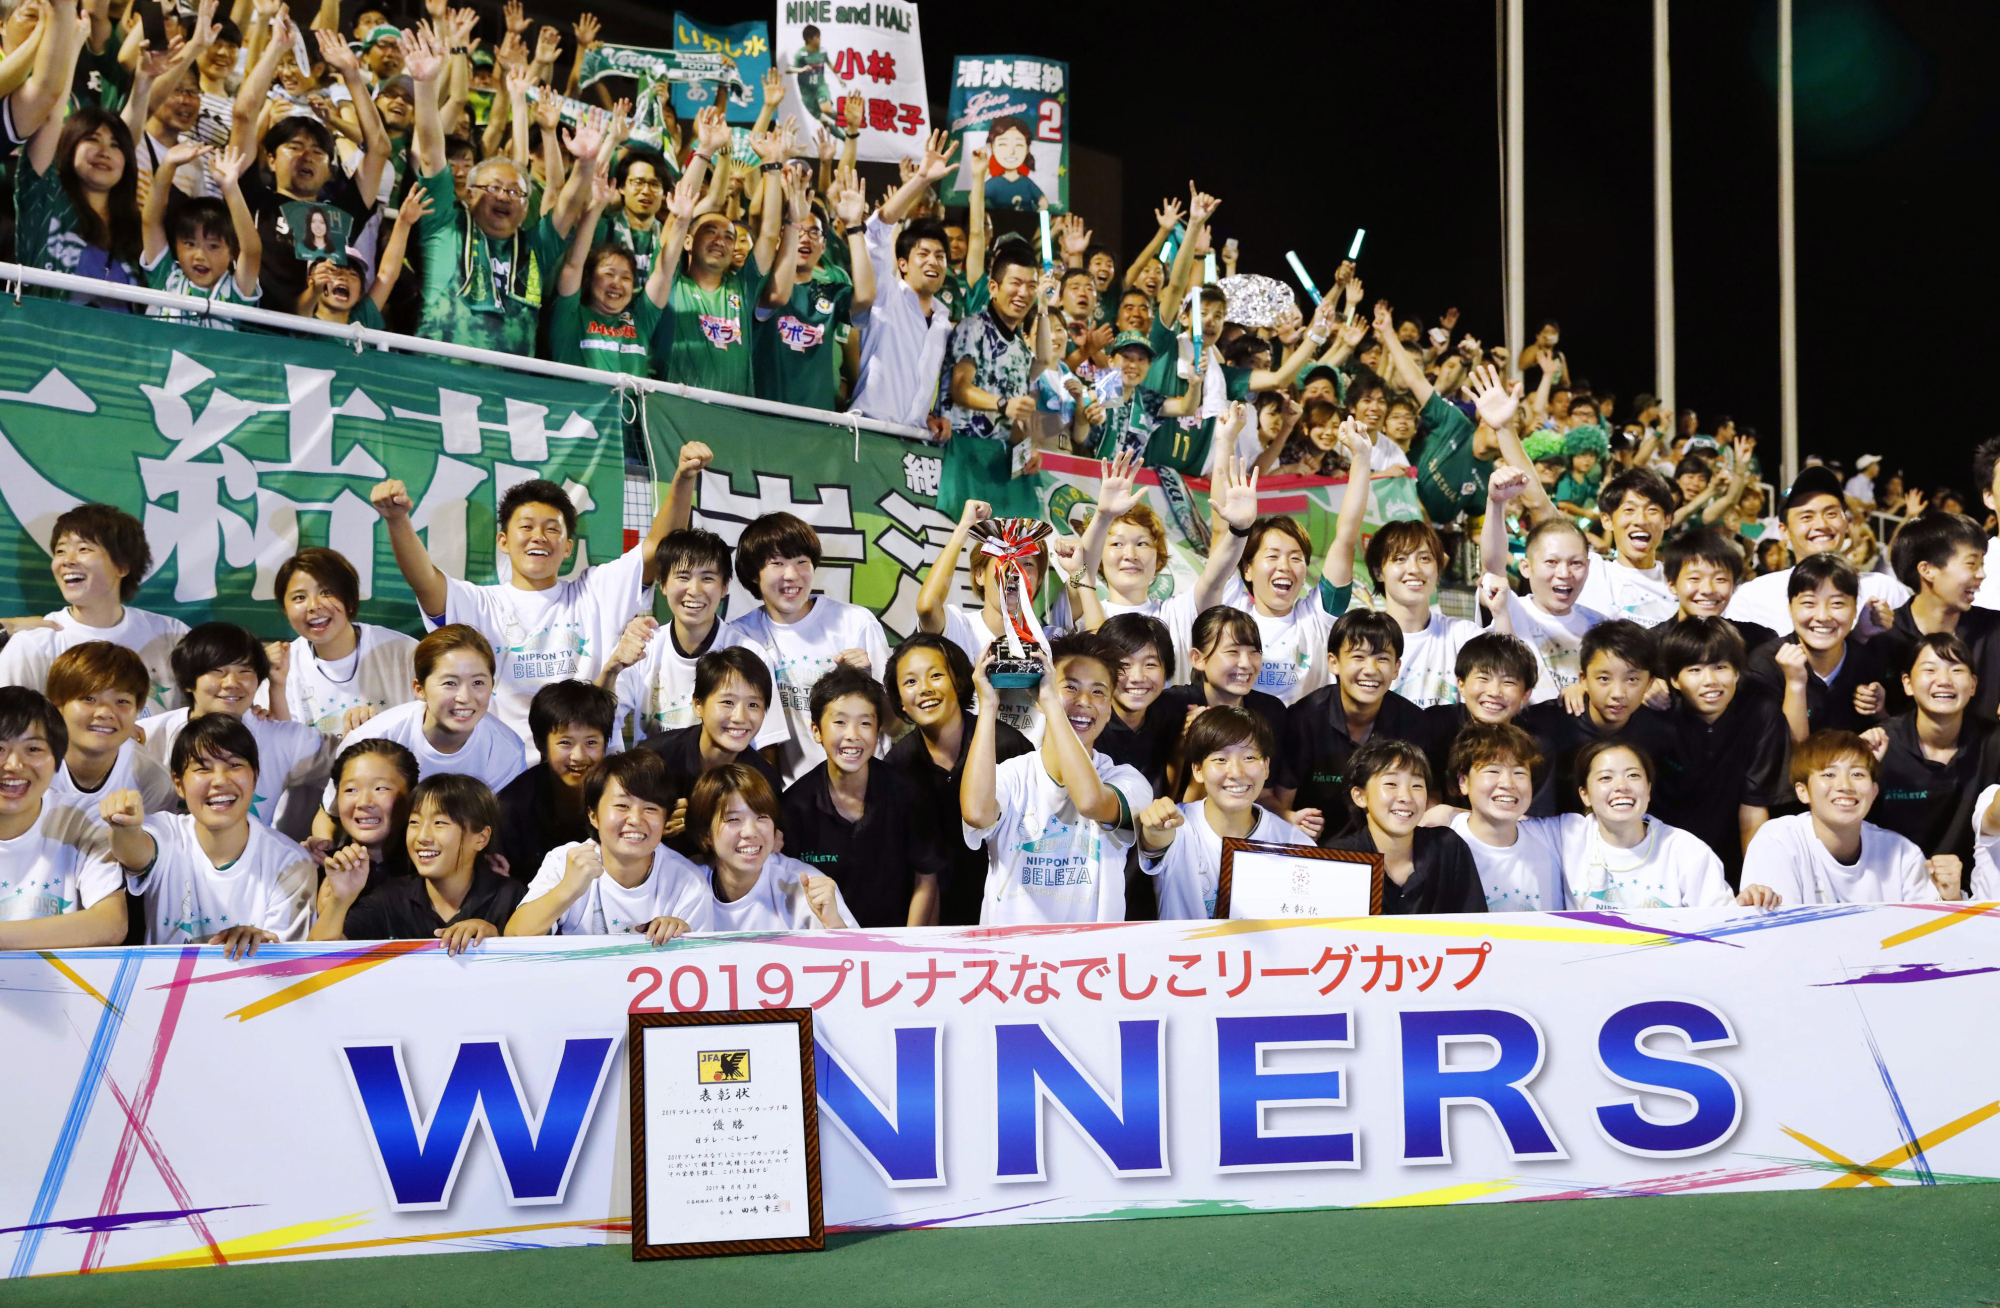 NTV Beleza players celebrate after winning their second straight Nadeshiko League Cup final on Aug. 2 at Tokyo's Ajinomoto Field Nishigaoka. Beleza, one of the strongest teams in the Nadeshiko League, is likely to be a founding member of the new women's professional league. | KYODO